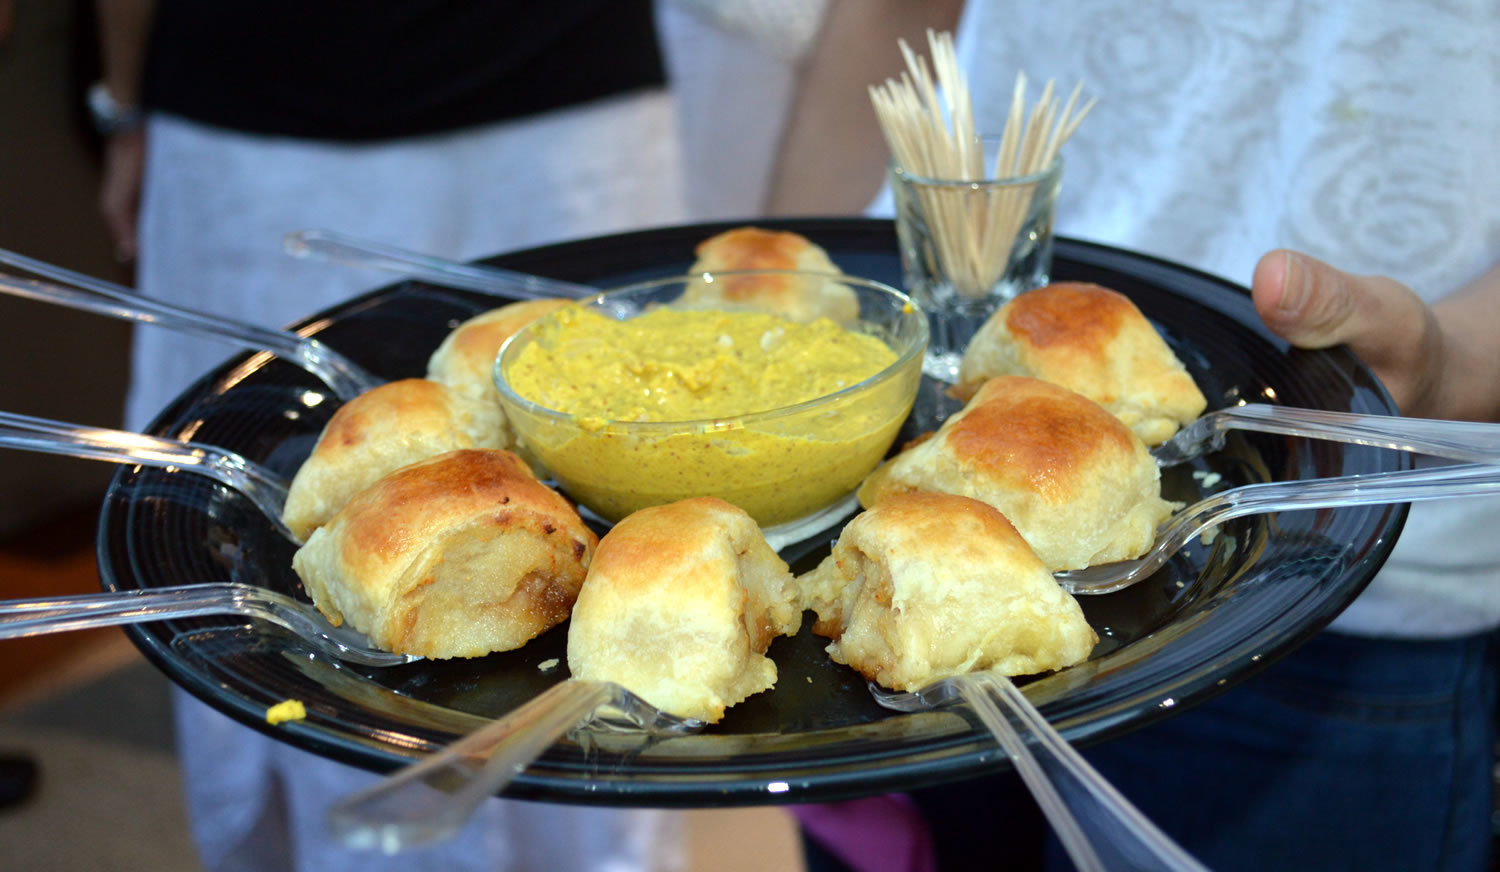 Knish anyone? We offer on-site catering for any occaision!